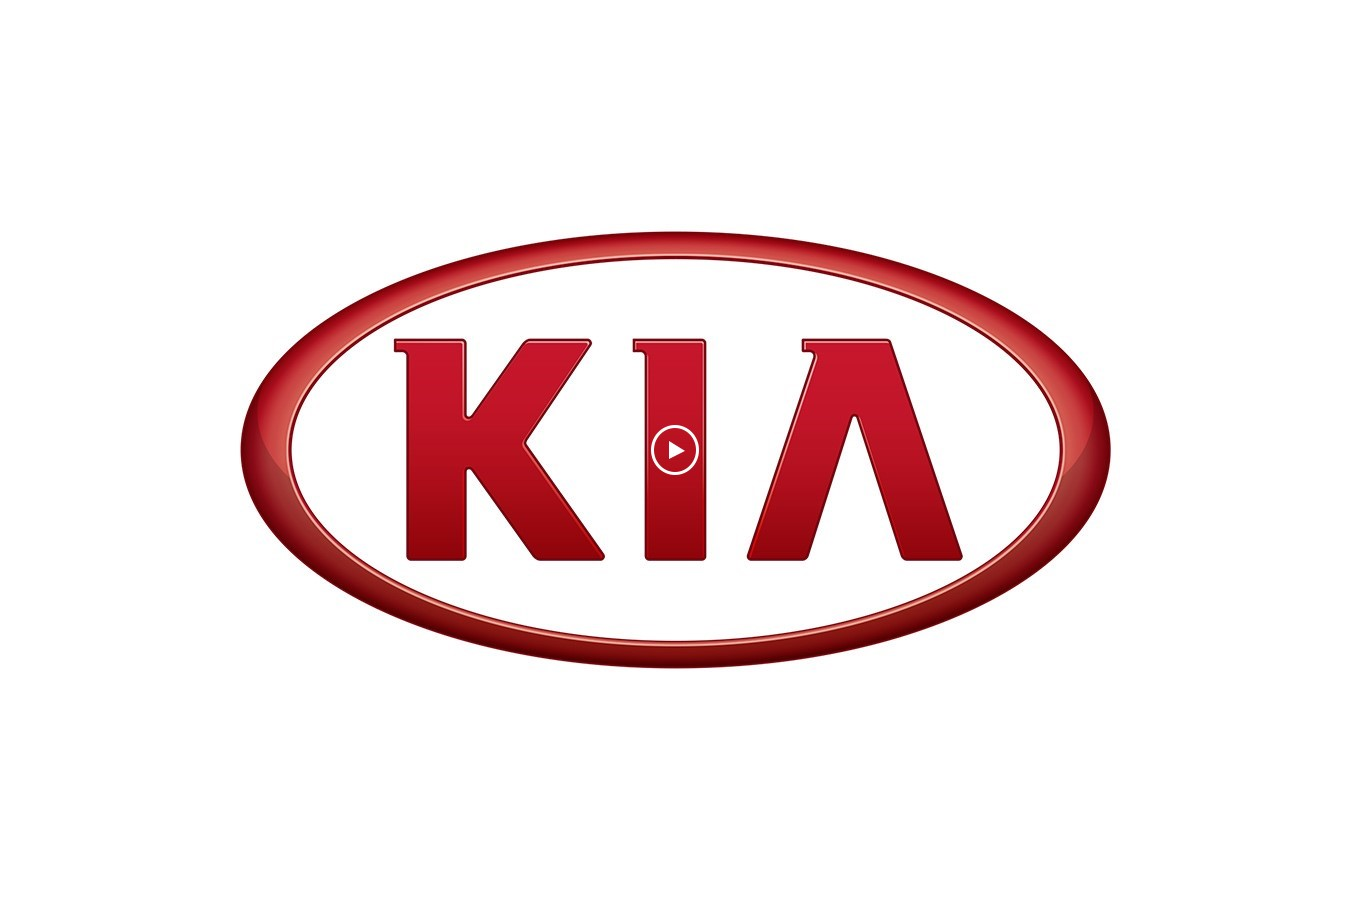 VIDEO DEMONSTRATING KIA REAR OCCUPANT ALERT SYSTEM